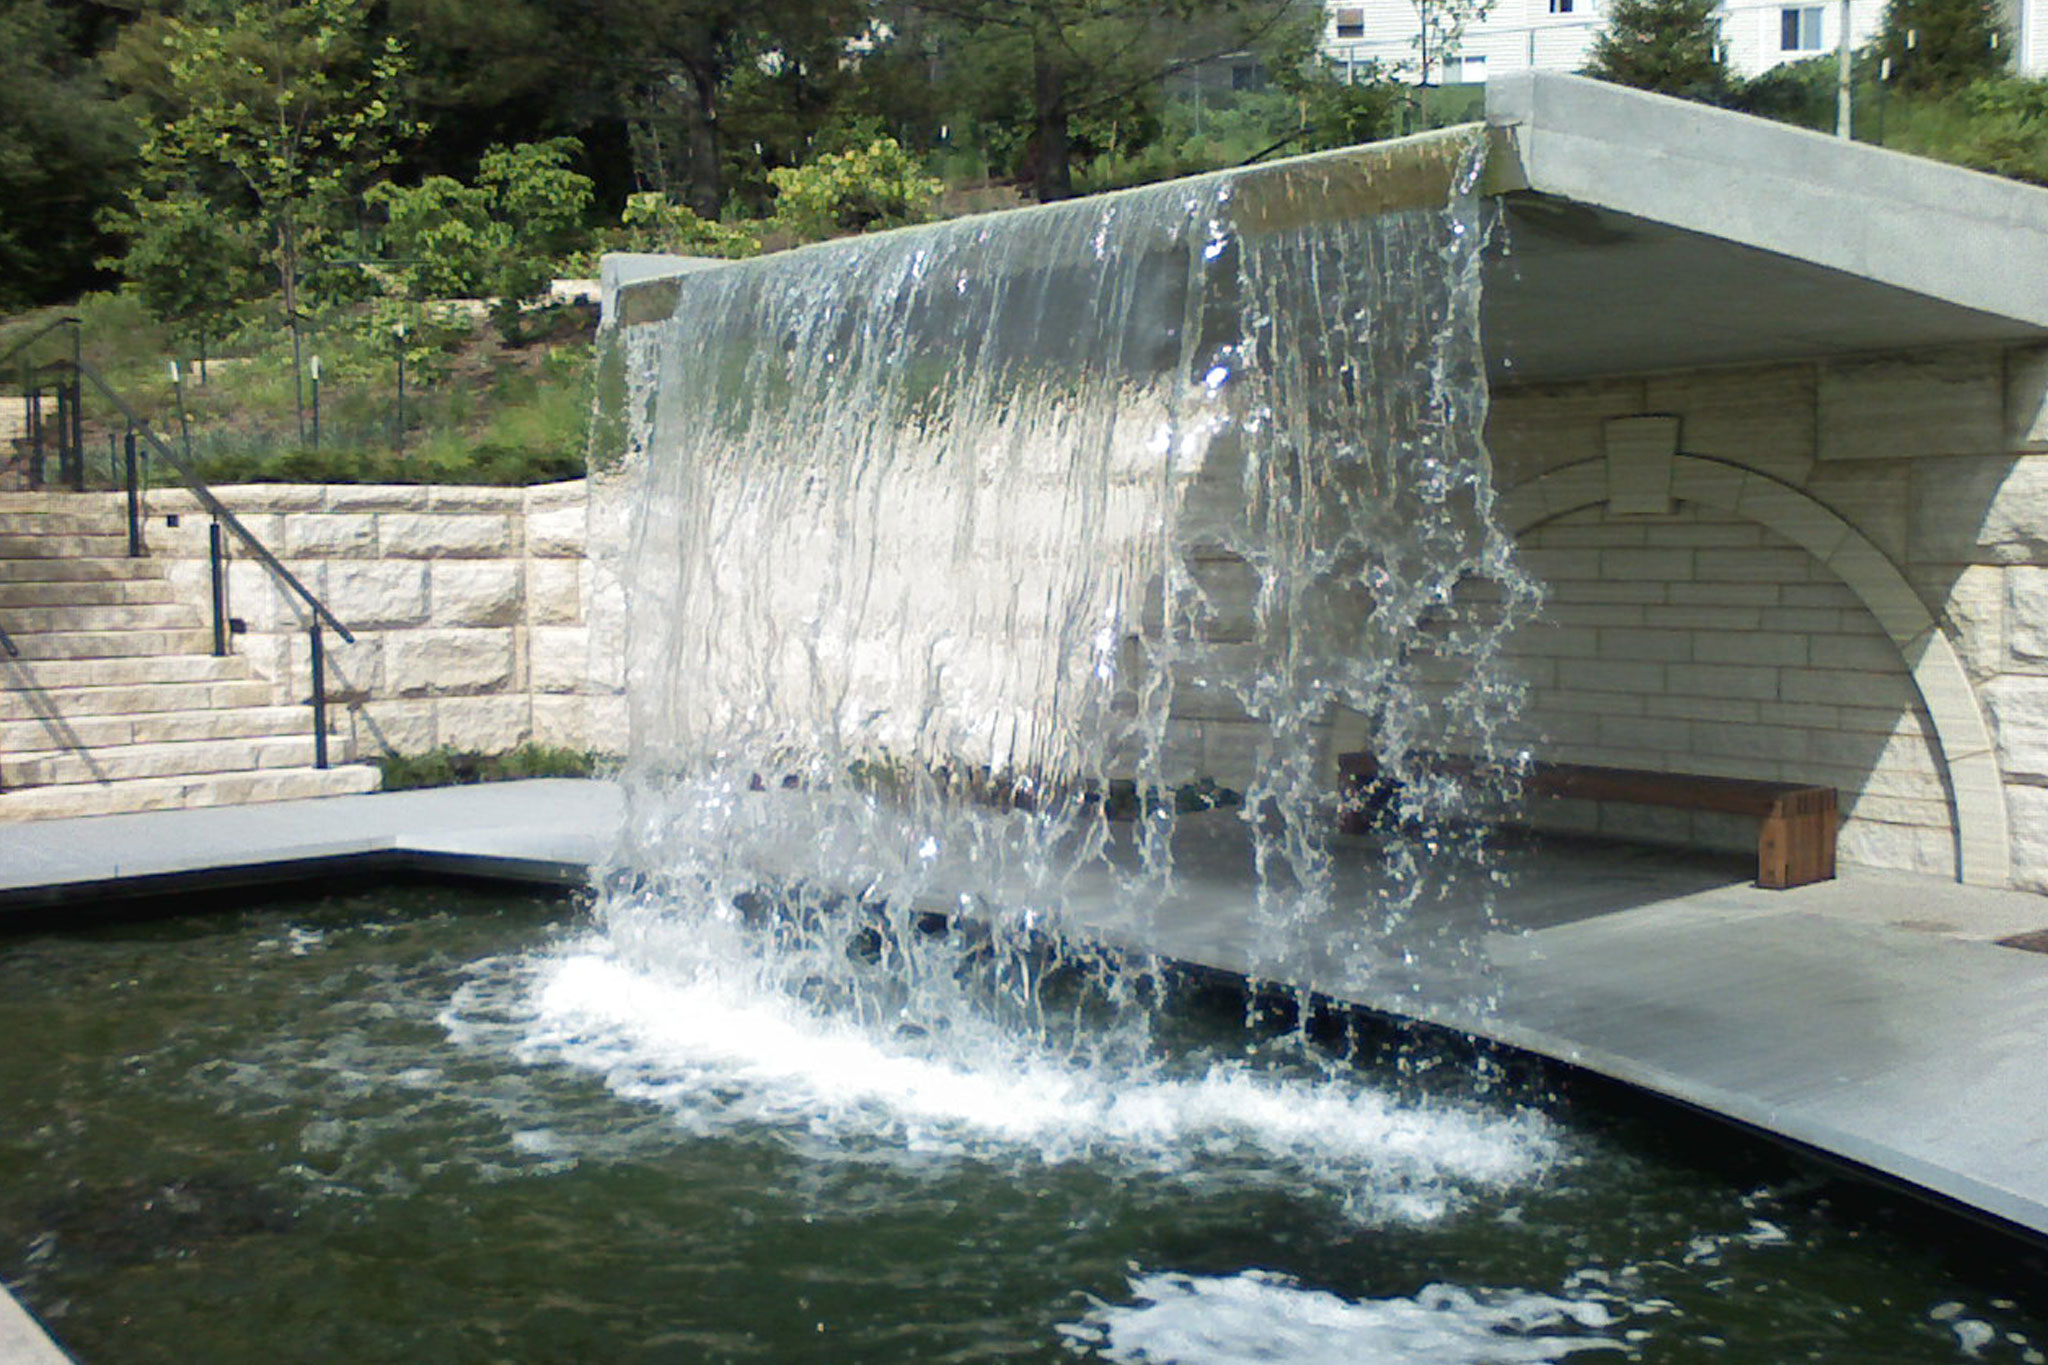 Des moines botanical garden waterfall delta fountains for Garden waterfall fountain